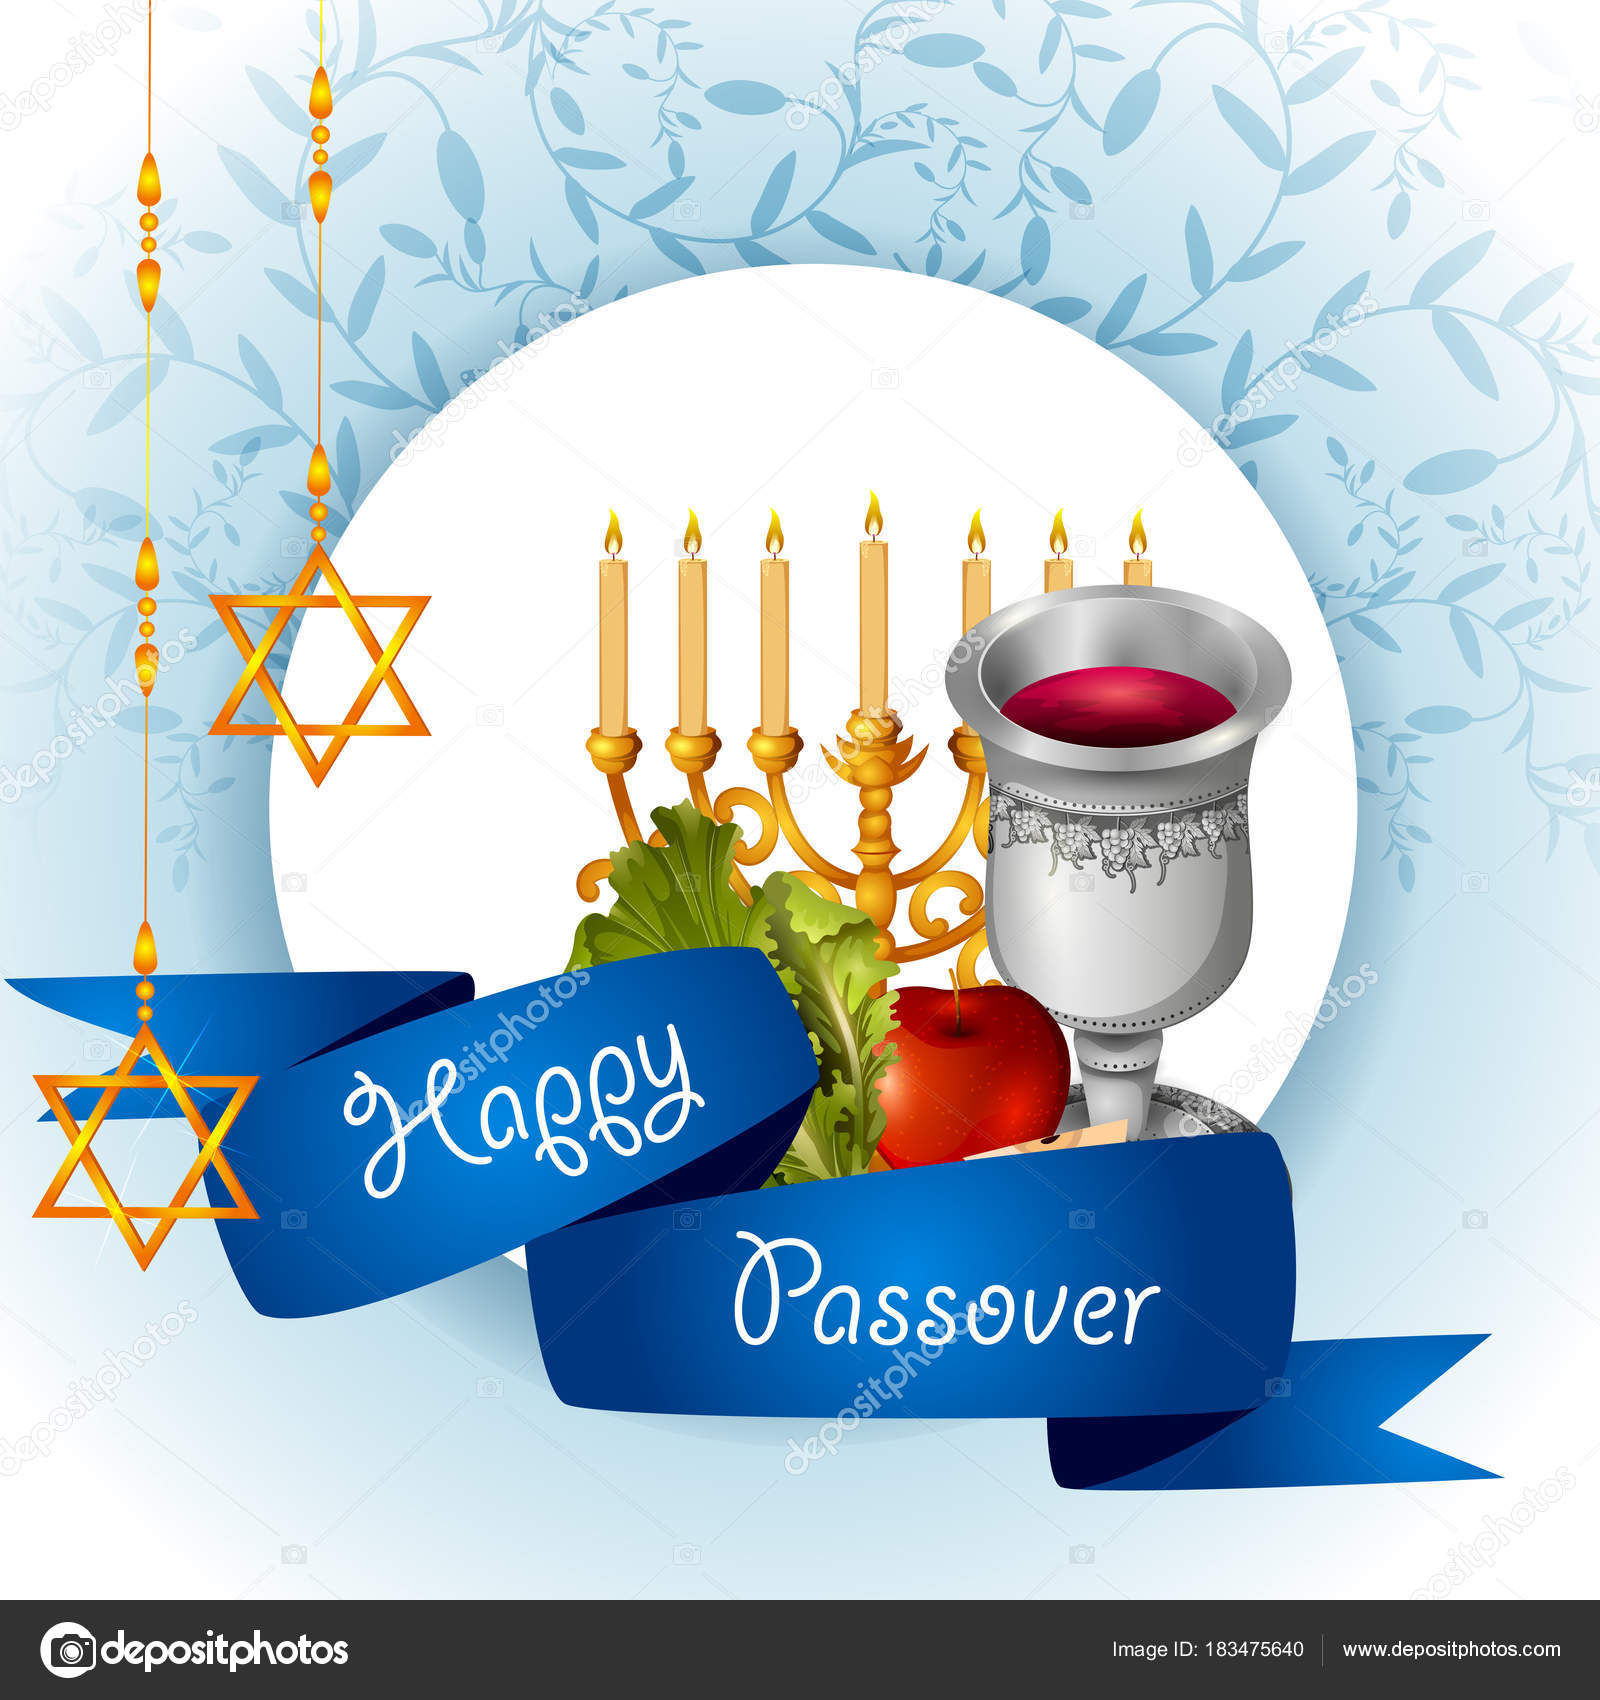 Jewish holiday of passover pesach seder stock vector jewish holiday of passover pesach seder stock vector m4hsunfo